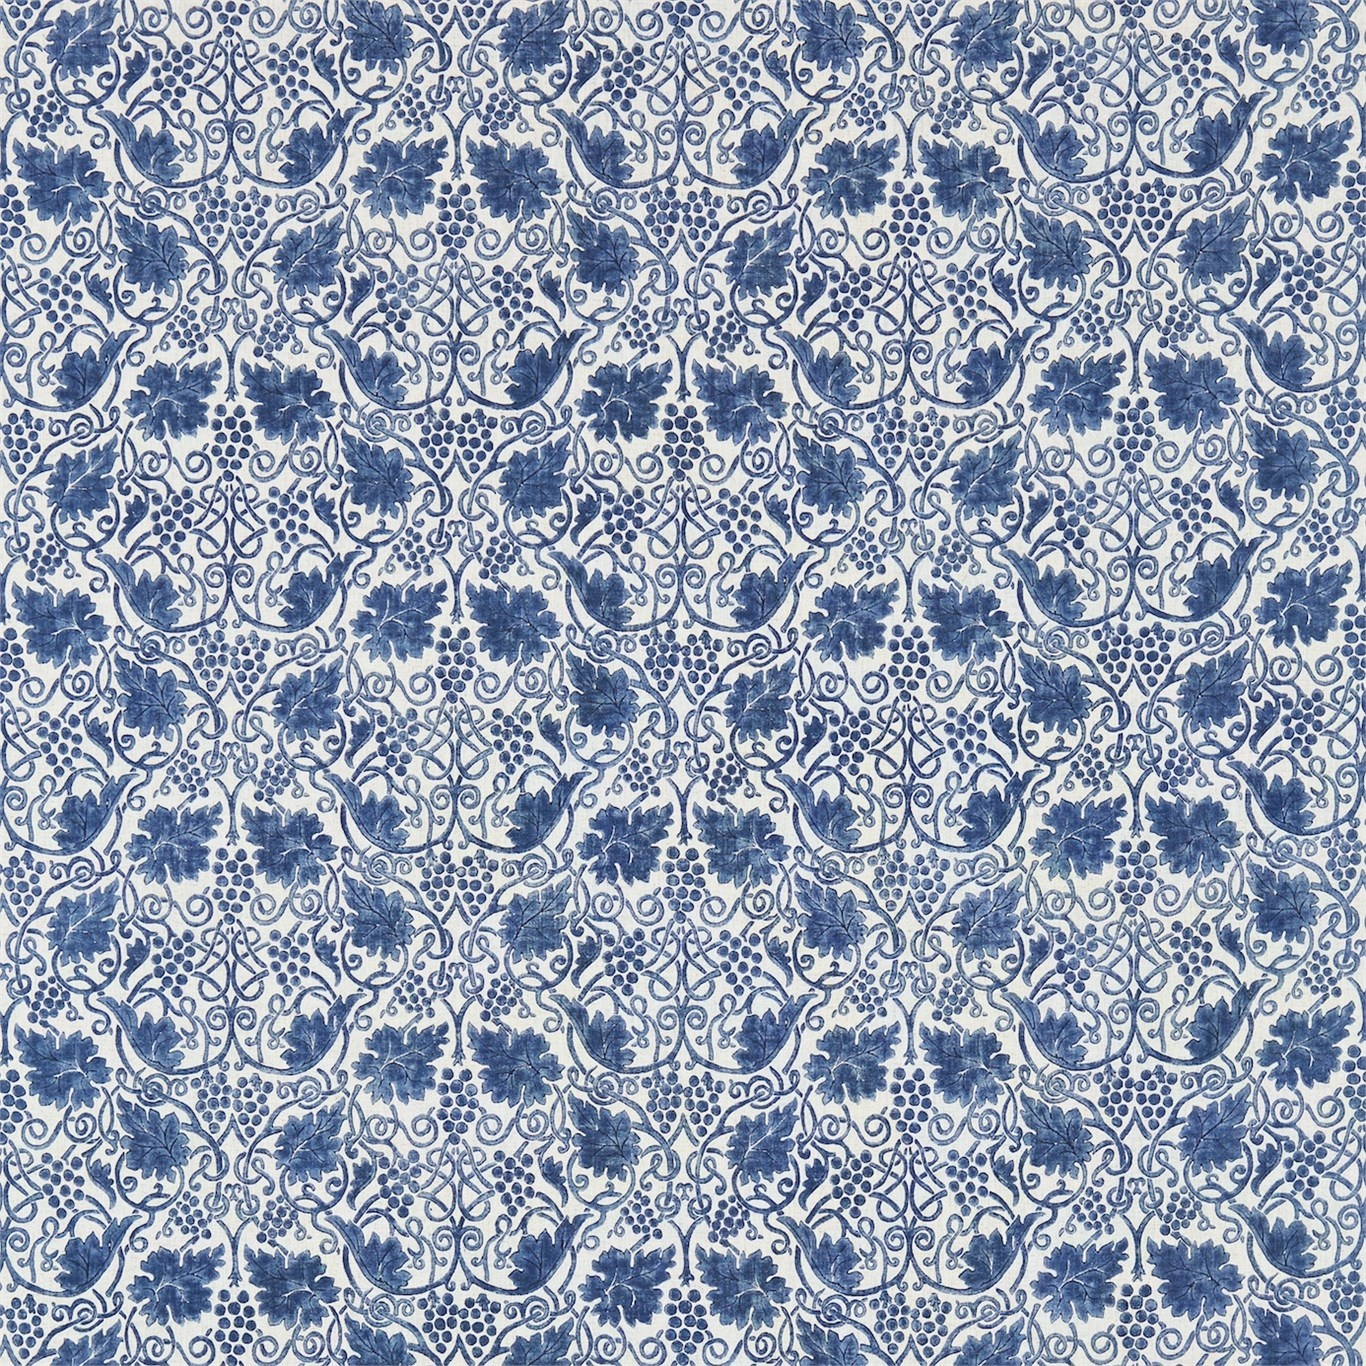 Image of Morris & Co Grapevine Indigo Curtain Fabric 224476